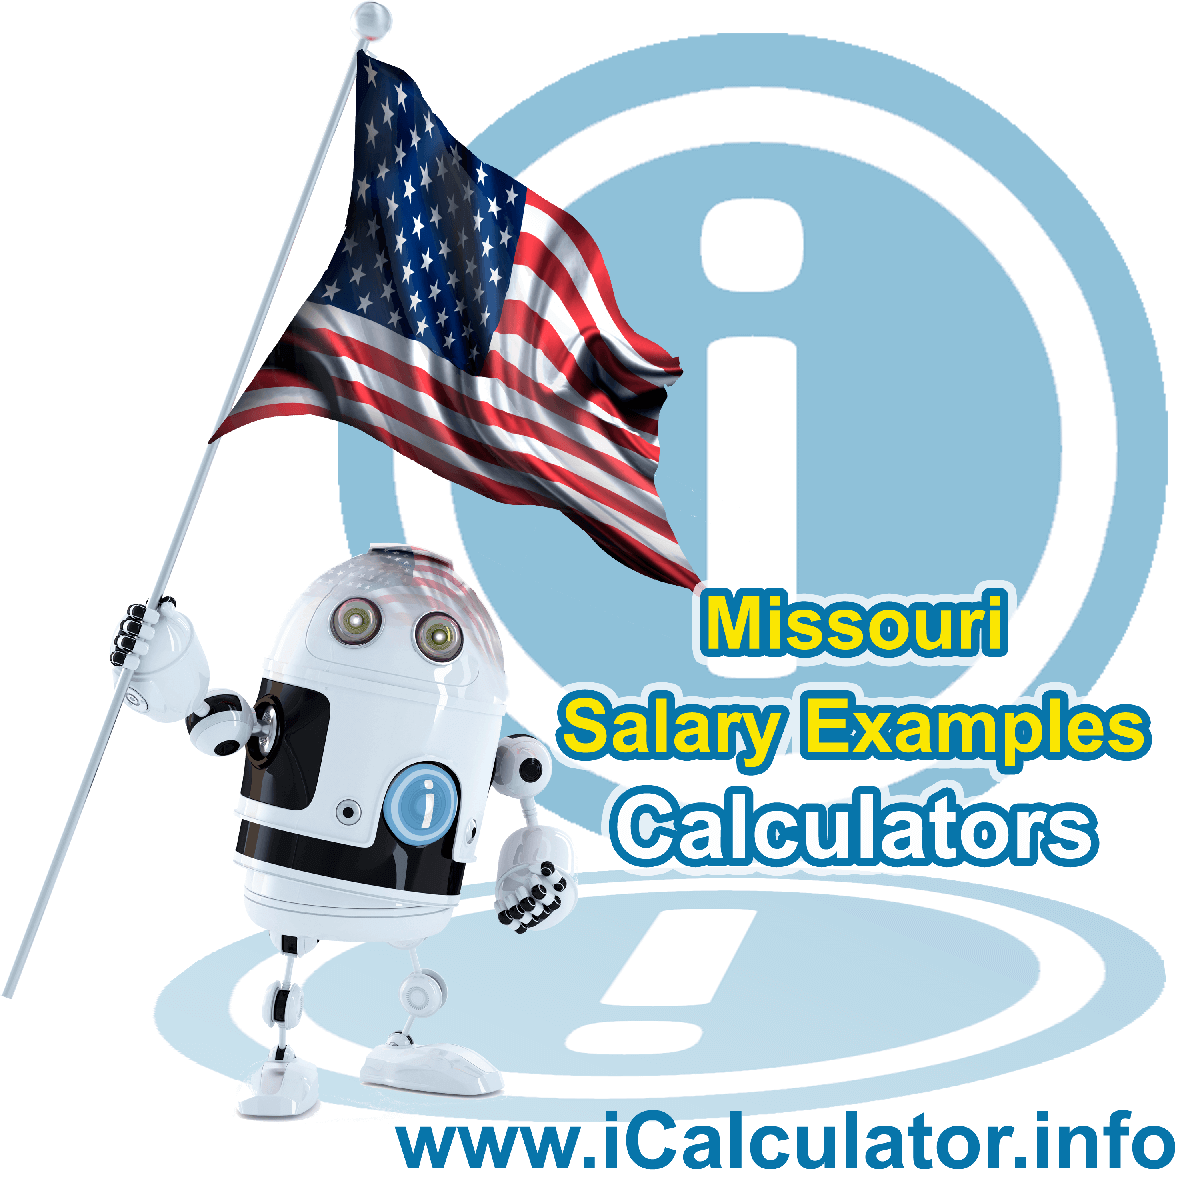 Missouri Salary Example for $60.00 in 2020 | iCalculator | $60.00 salary example for employee and employer paying Missouri State tincome taxes. Detailed salary after tax calculation including Missouri State Tax, Federal State Tax, Medicare Deductions, Social Security, Capital Gains and other income tax and salary deductions complete with supporting Missouri state tax tables